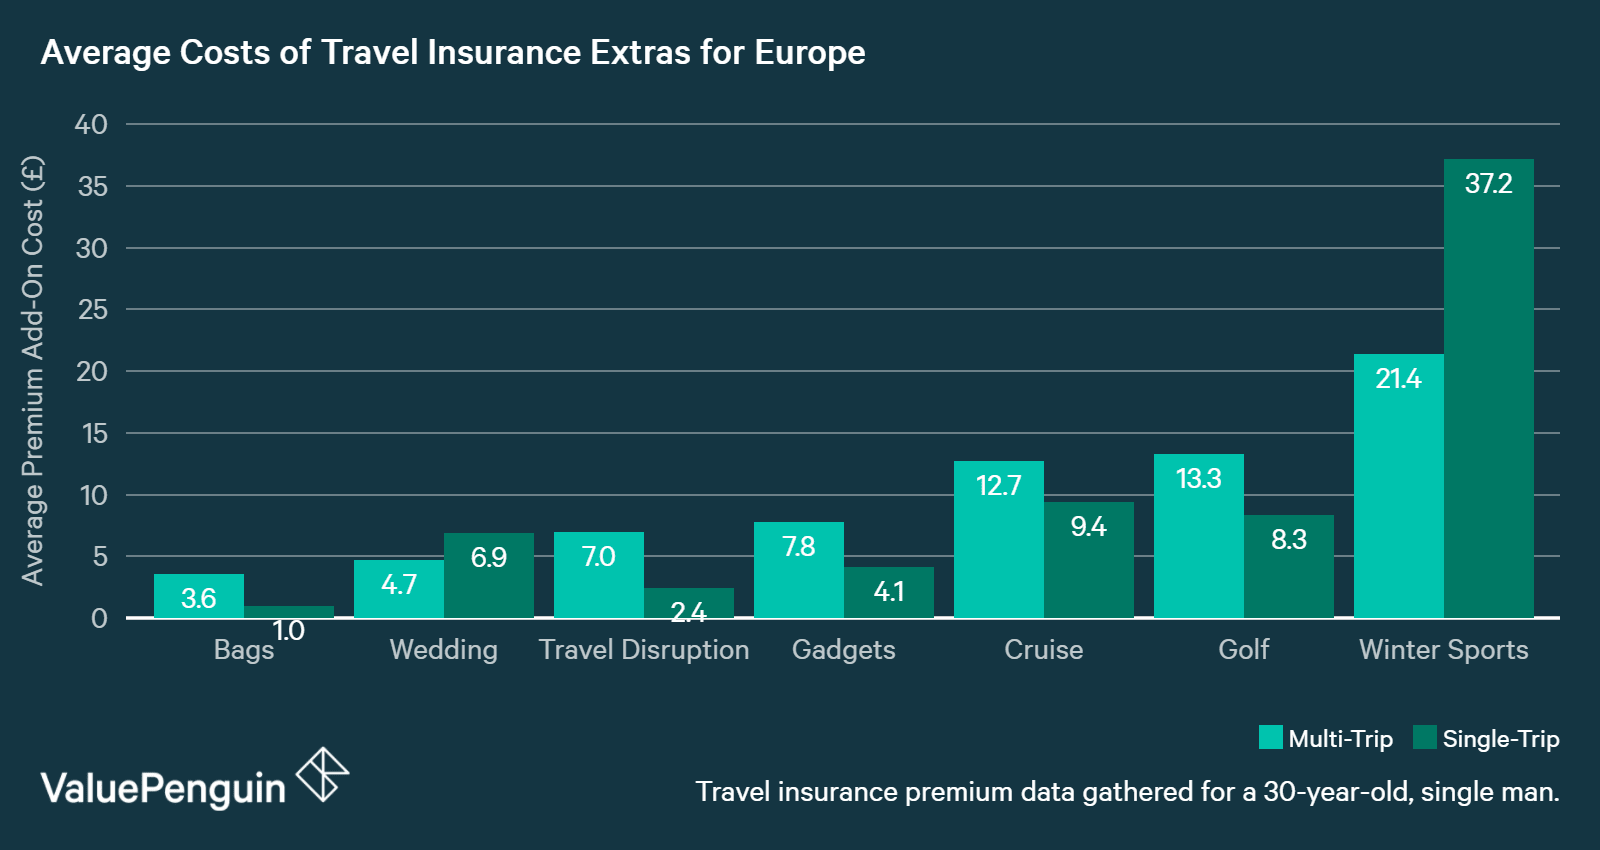 Chart showing Average Cost of Travel Insurance Extras to Europe